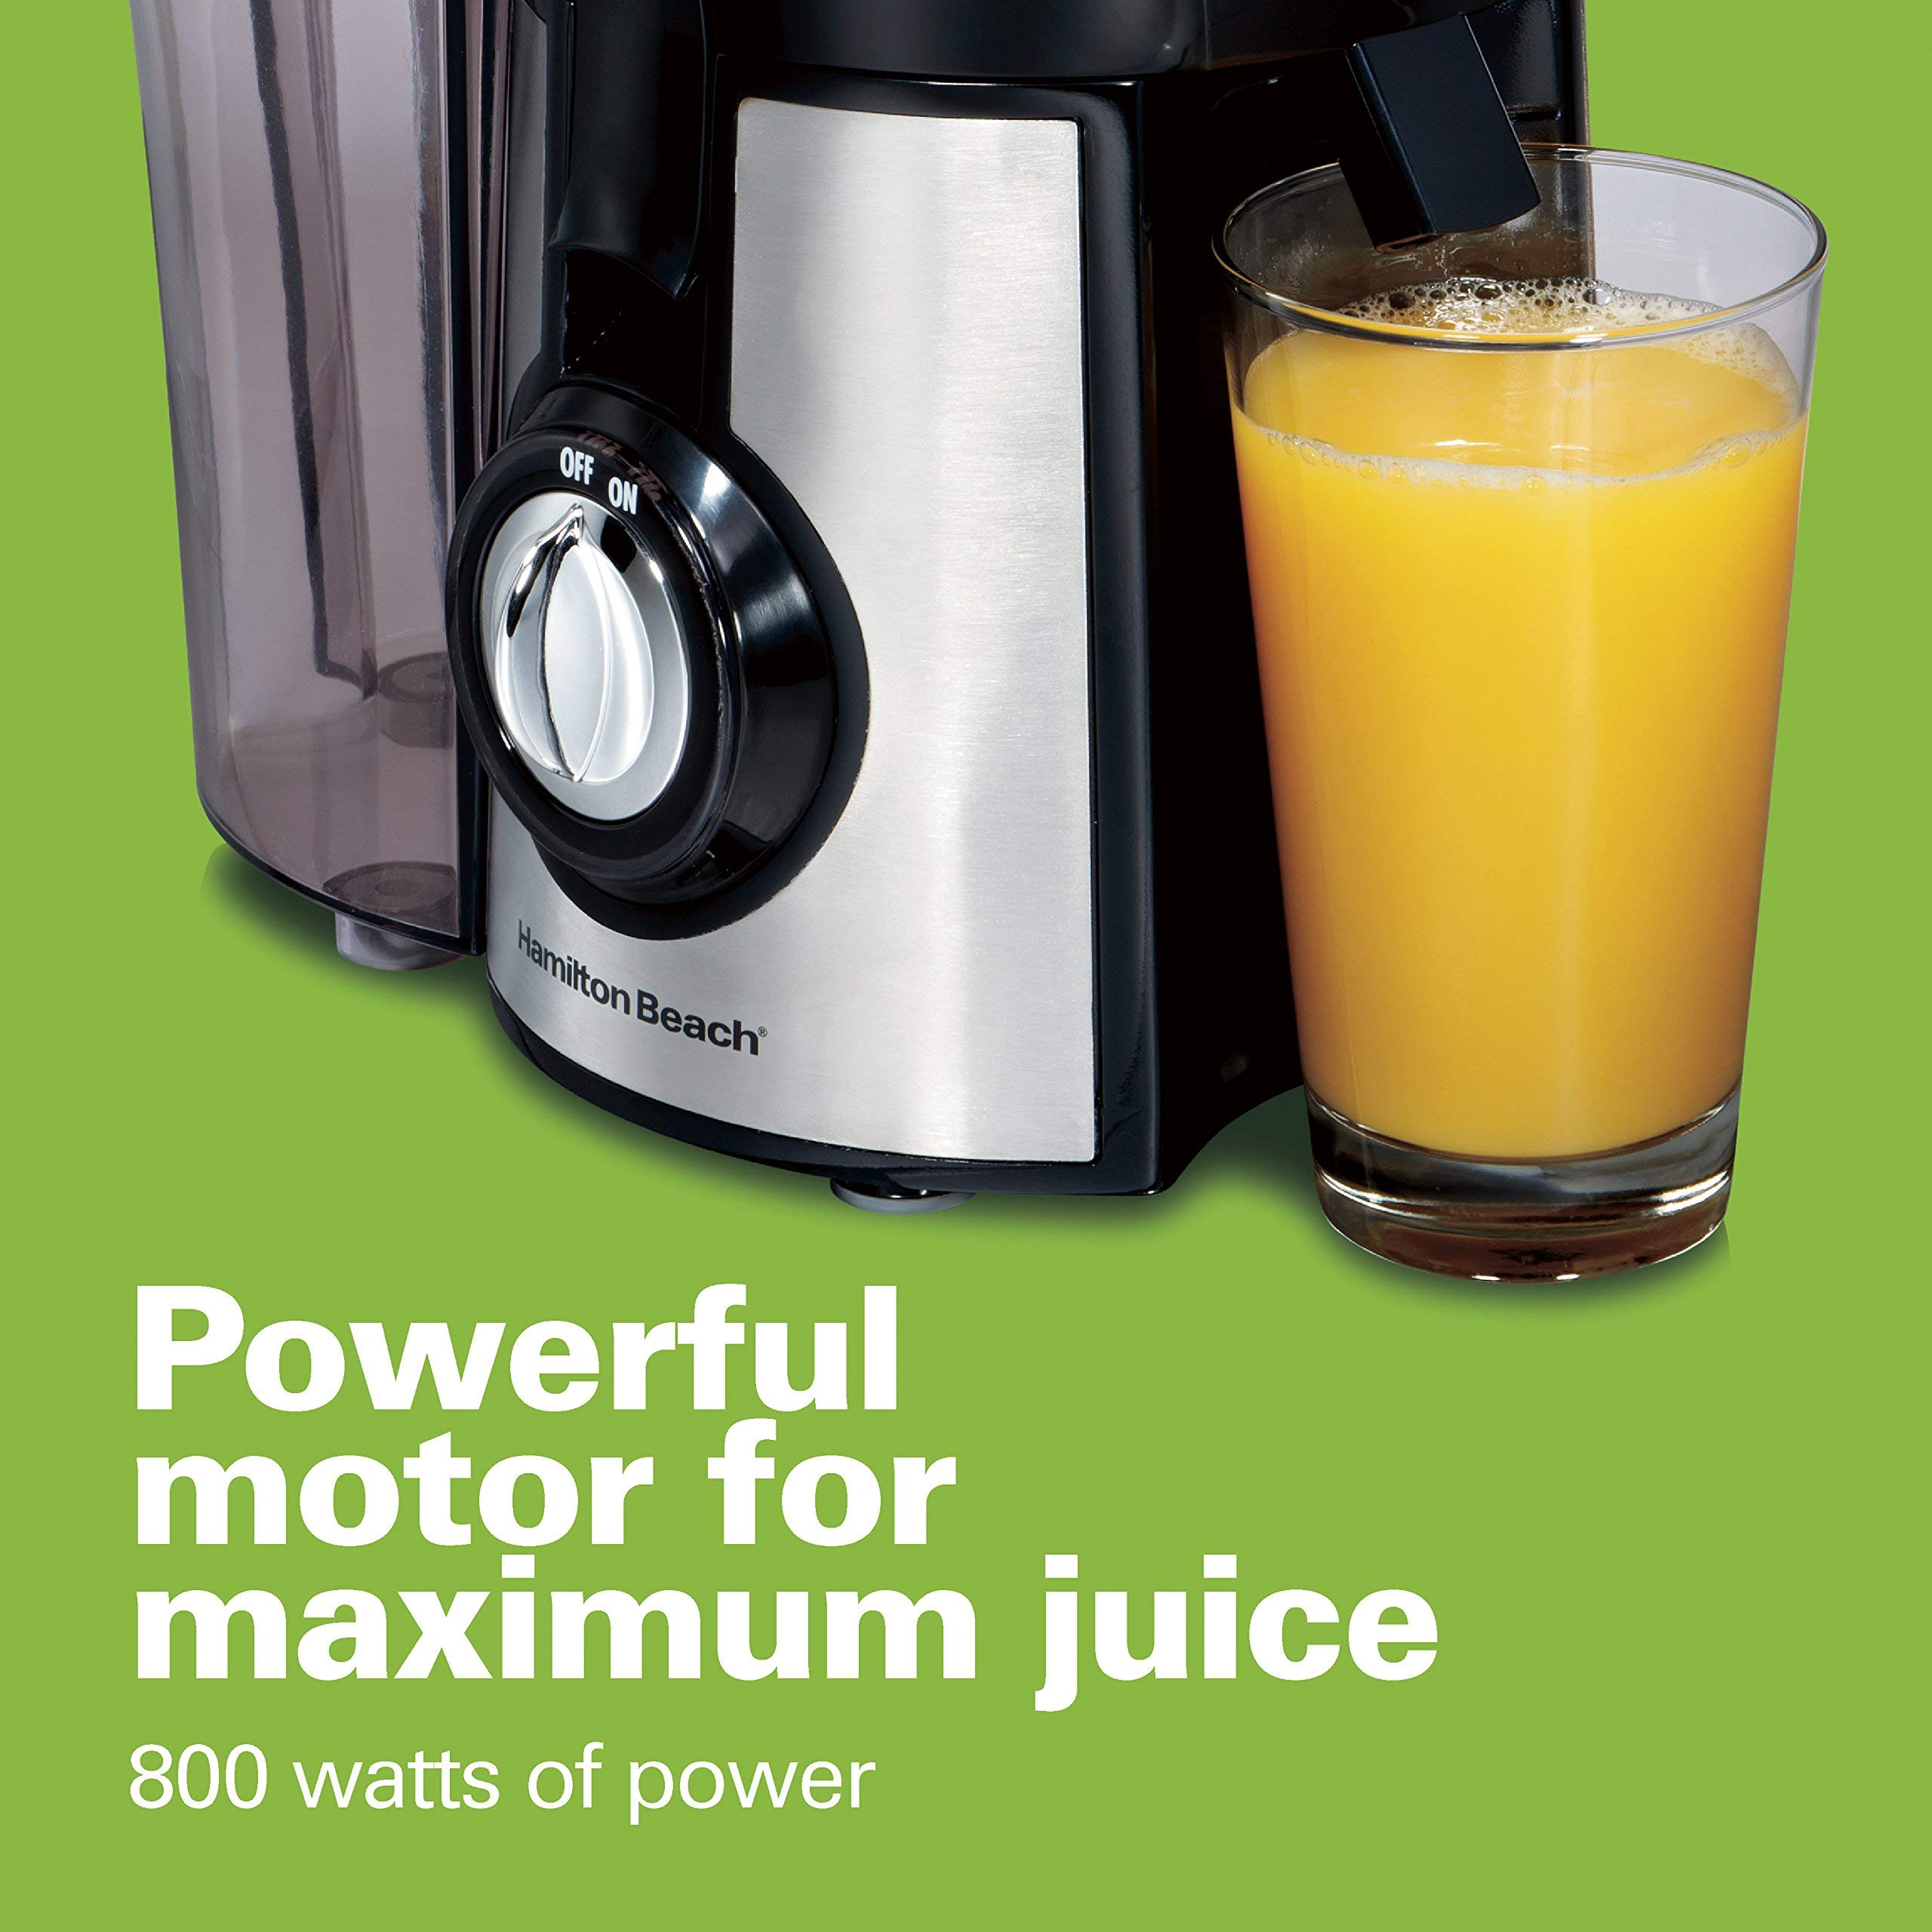 Hamilton Beach 040094922635 (67608A) Juicer, Electric, 800 Watt, Easy to Clean, BPA Free, Large, Silver (Renewed) by Hamilton Beach (Image #5)